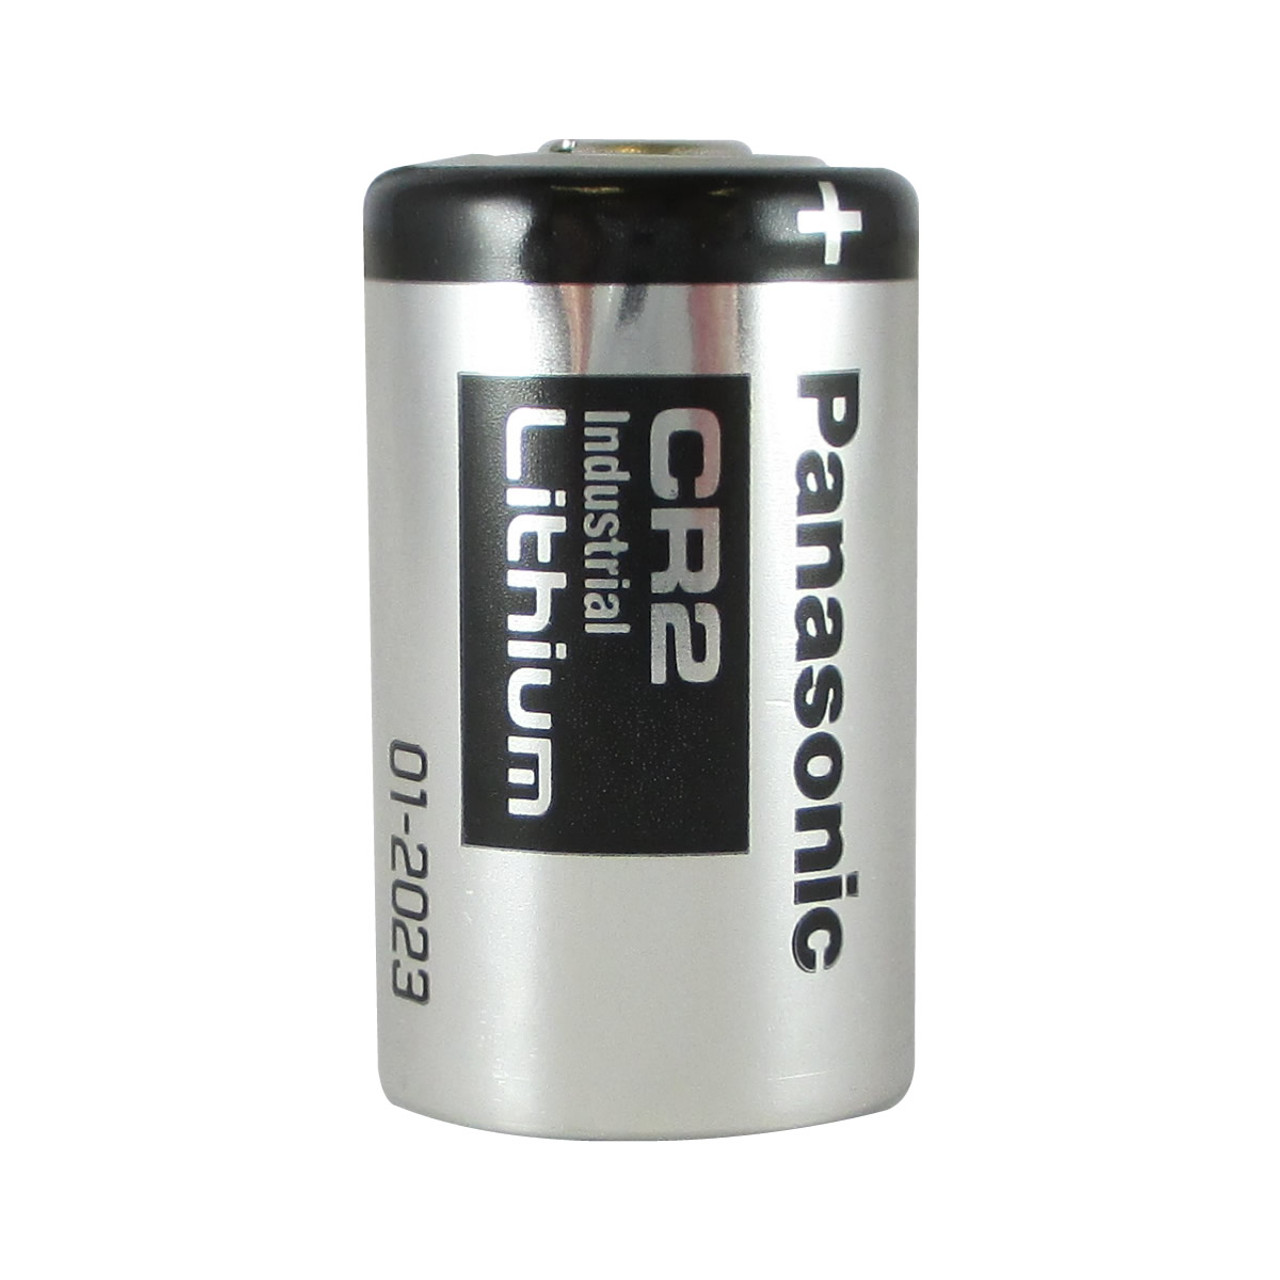 Panasonic CR2 Battery - 3 Volt 850mAh 1/2 AA Lithium (Bulk)